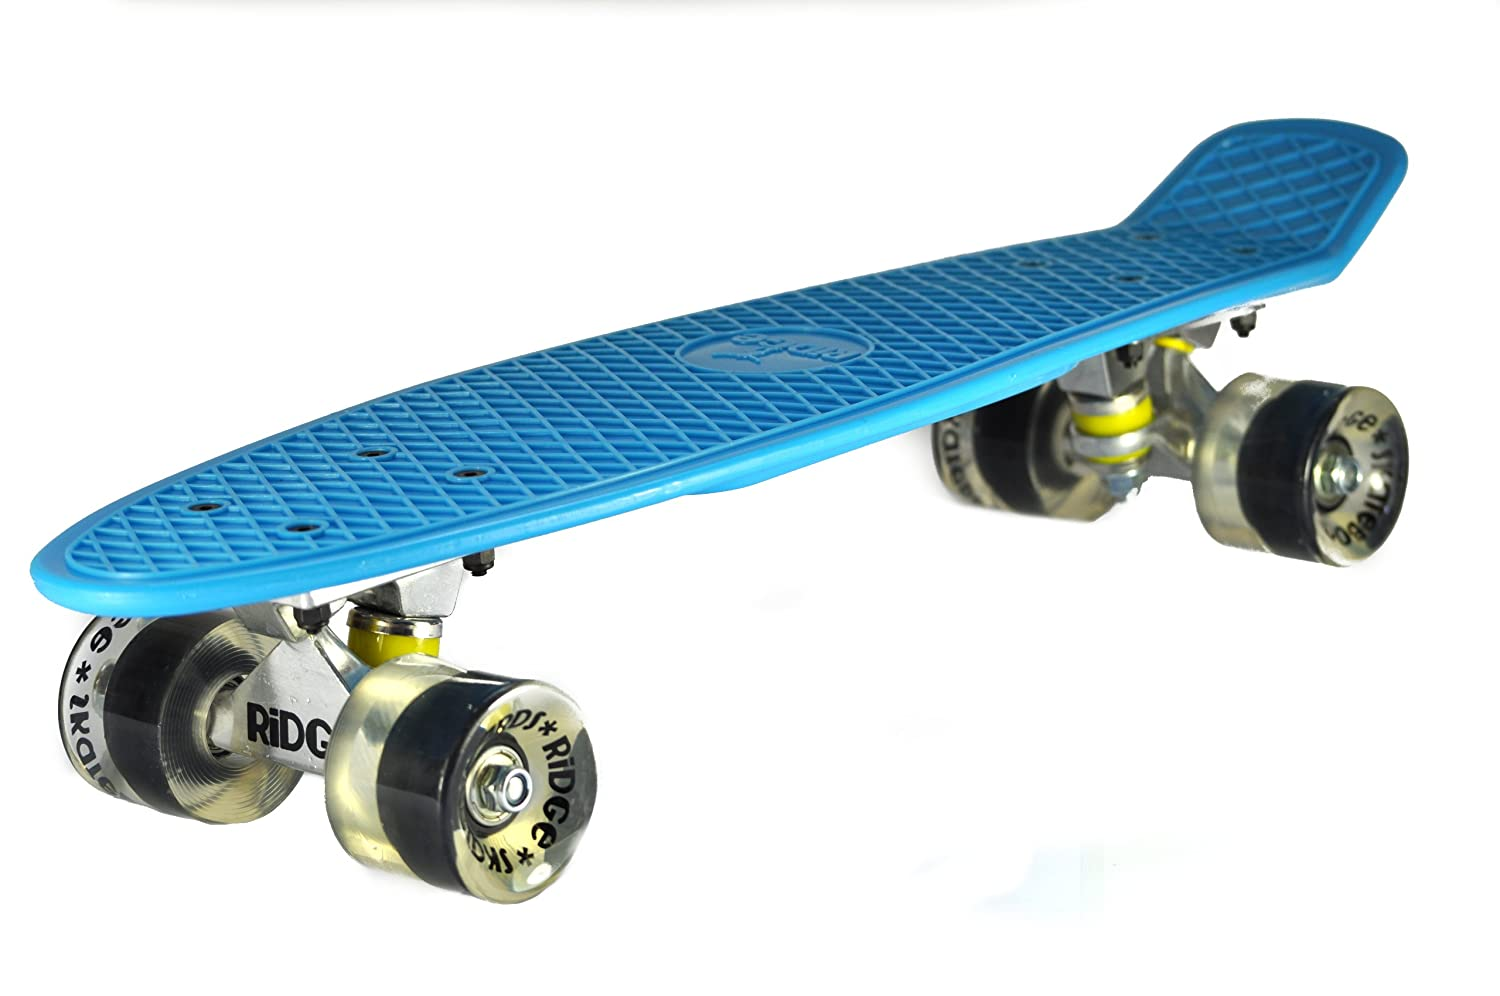 Ridge Skateboard 55 cm Mini Cruiser Retro